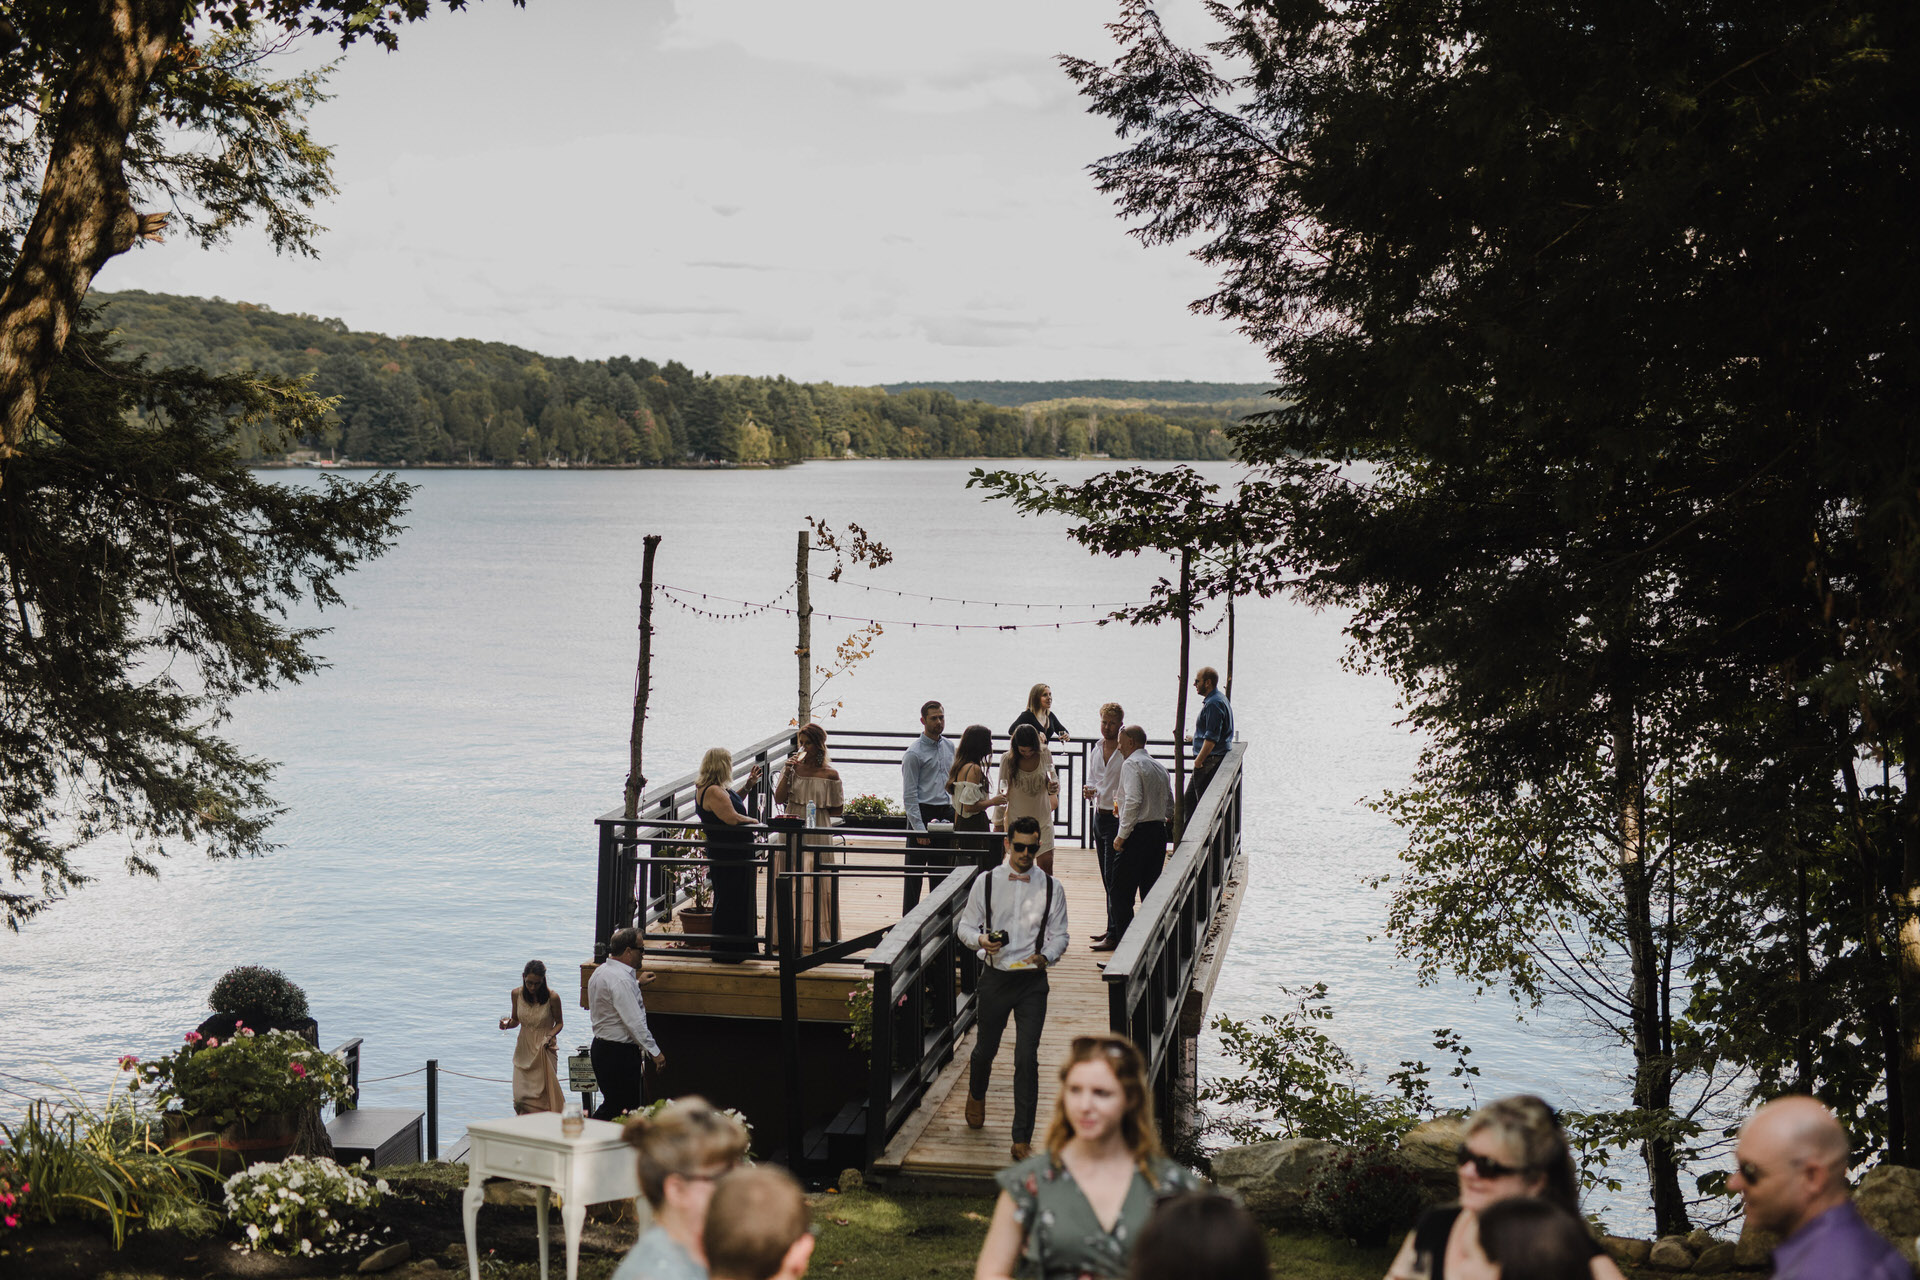 Muskoka Wedding - party on the dock